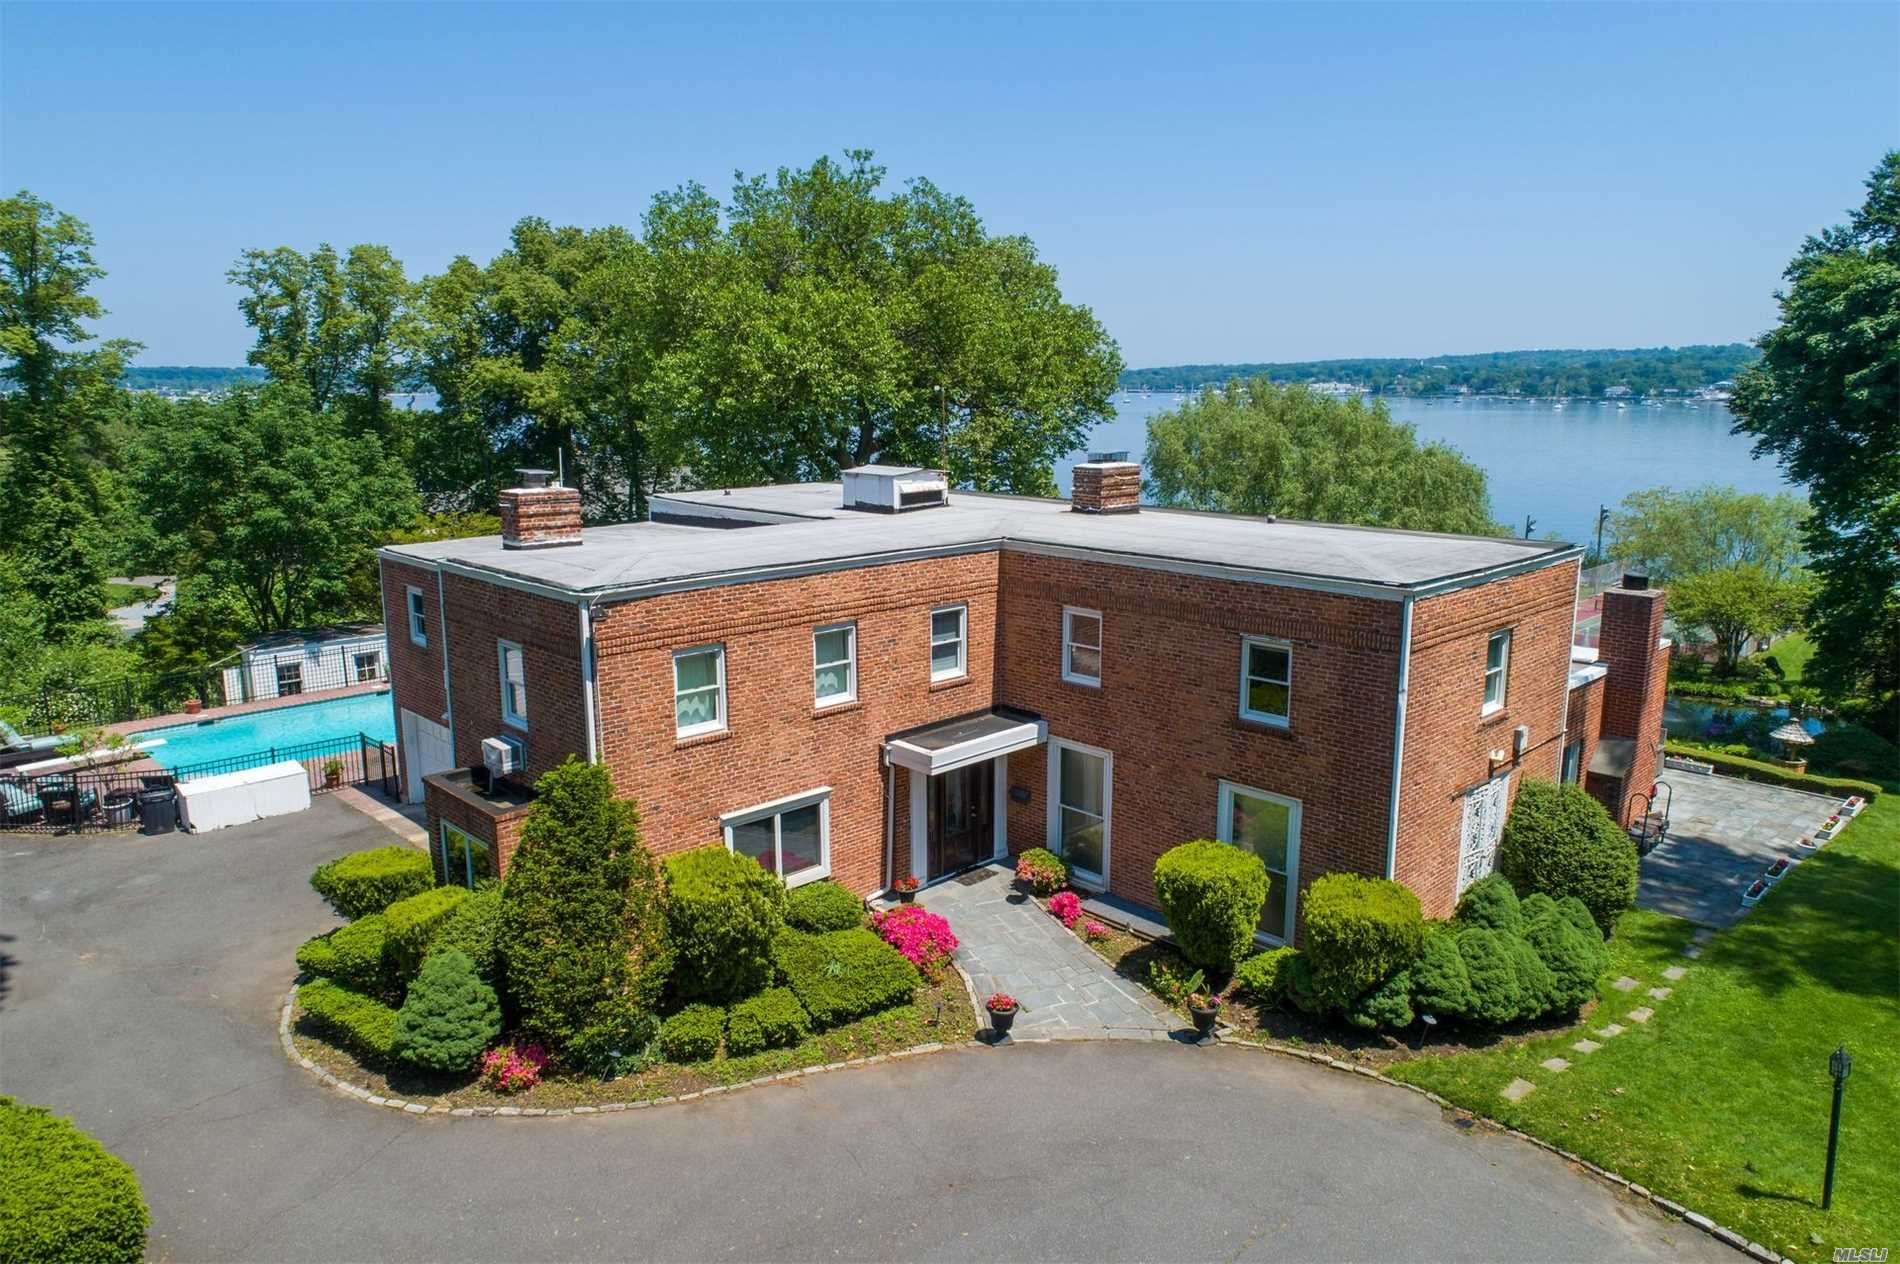 Amazing Waterfront Brick Colonial On A Private Beach Facing Manhasset Bay. Set On A Lush 4 Acres, Landscaped Compound, Including Fresh Water Pond, Tennis Court & Heated Pool. Large Entertainment Area - Family Room, Living Room, Dining Room & Library, Finished Basement. A True Gem. Convenient To Nyc.